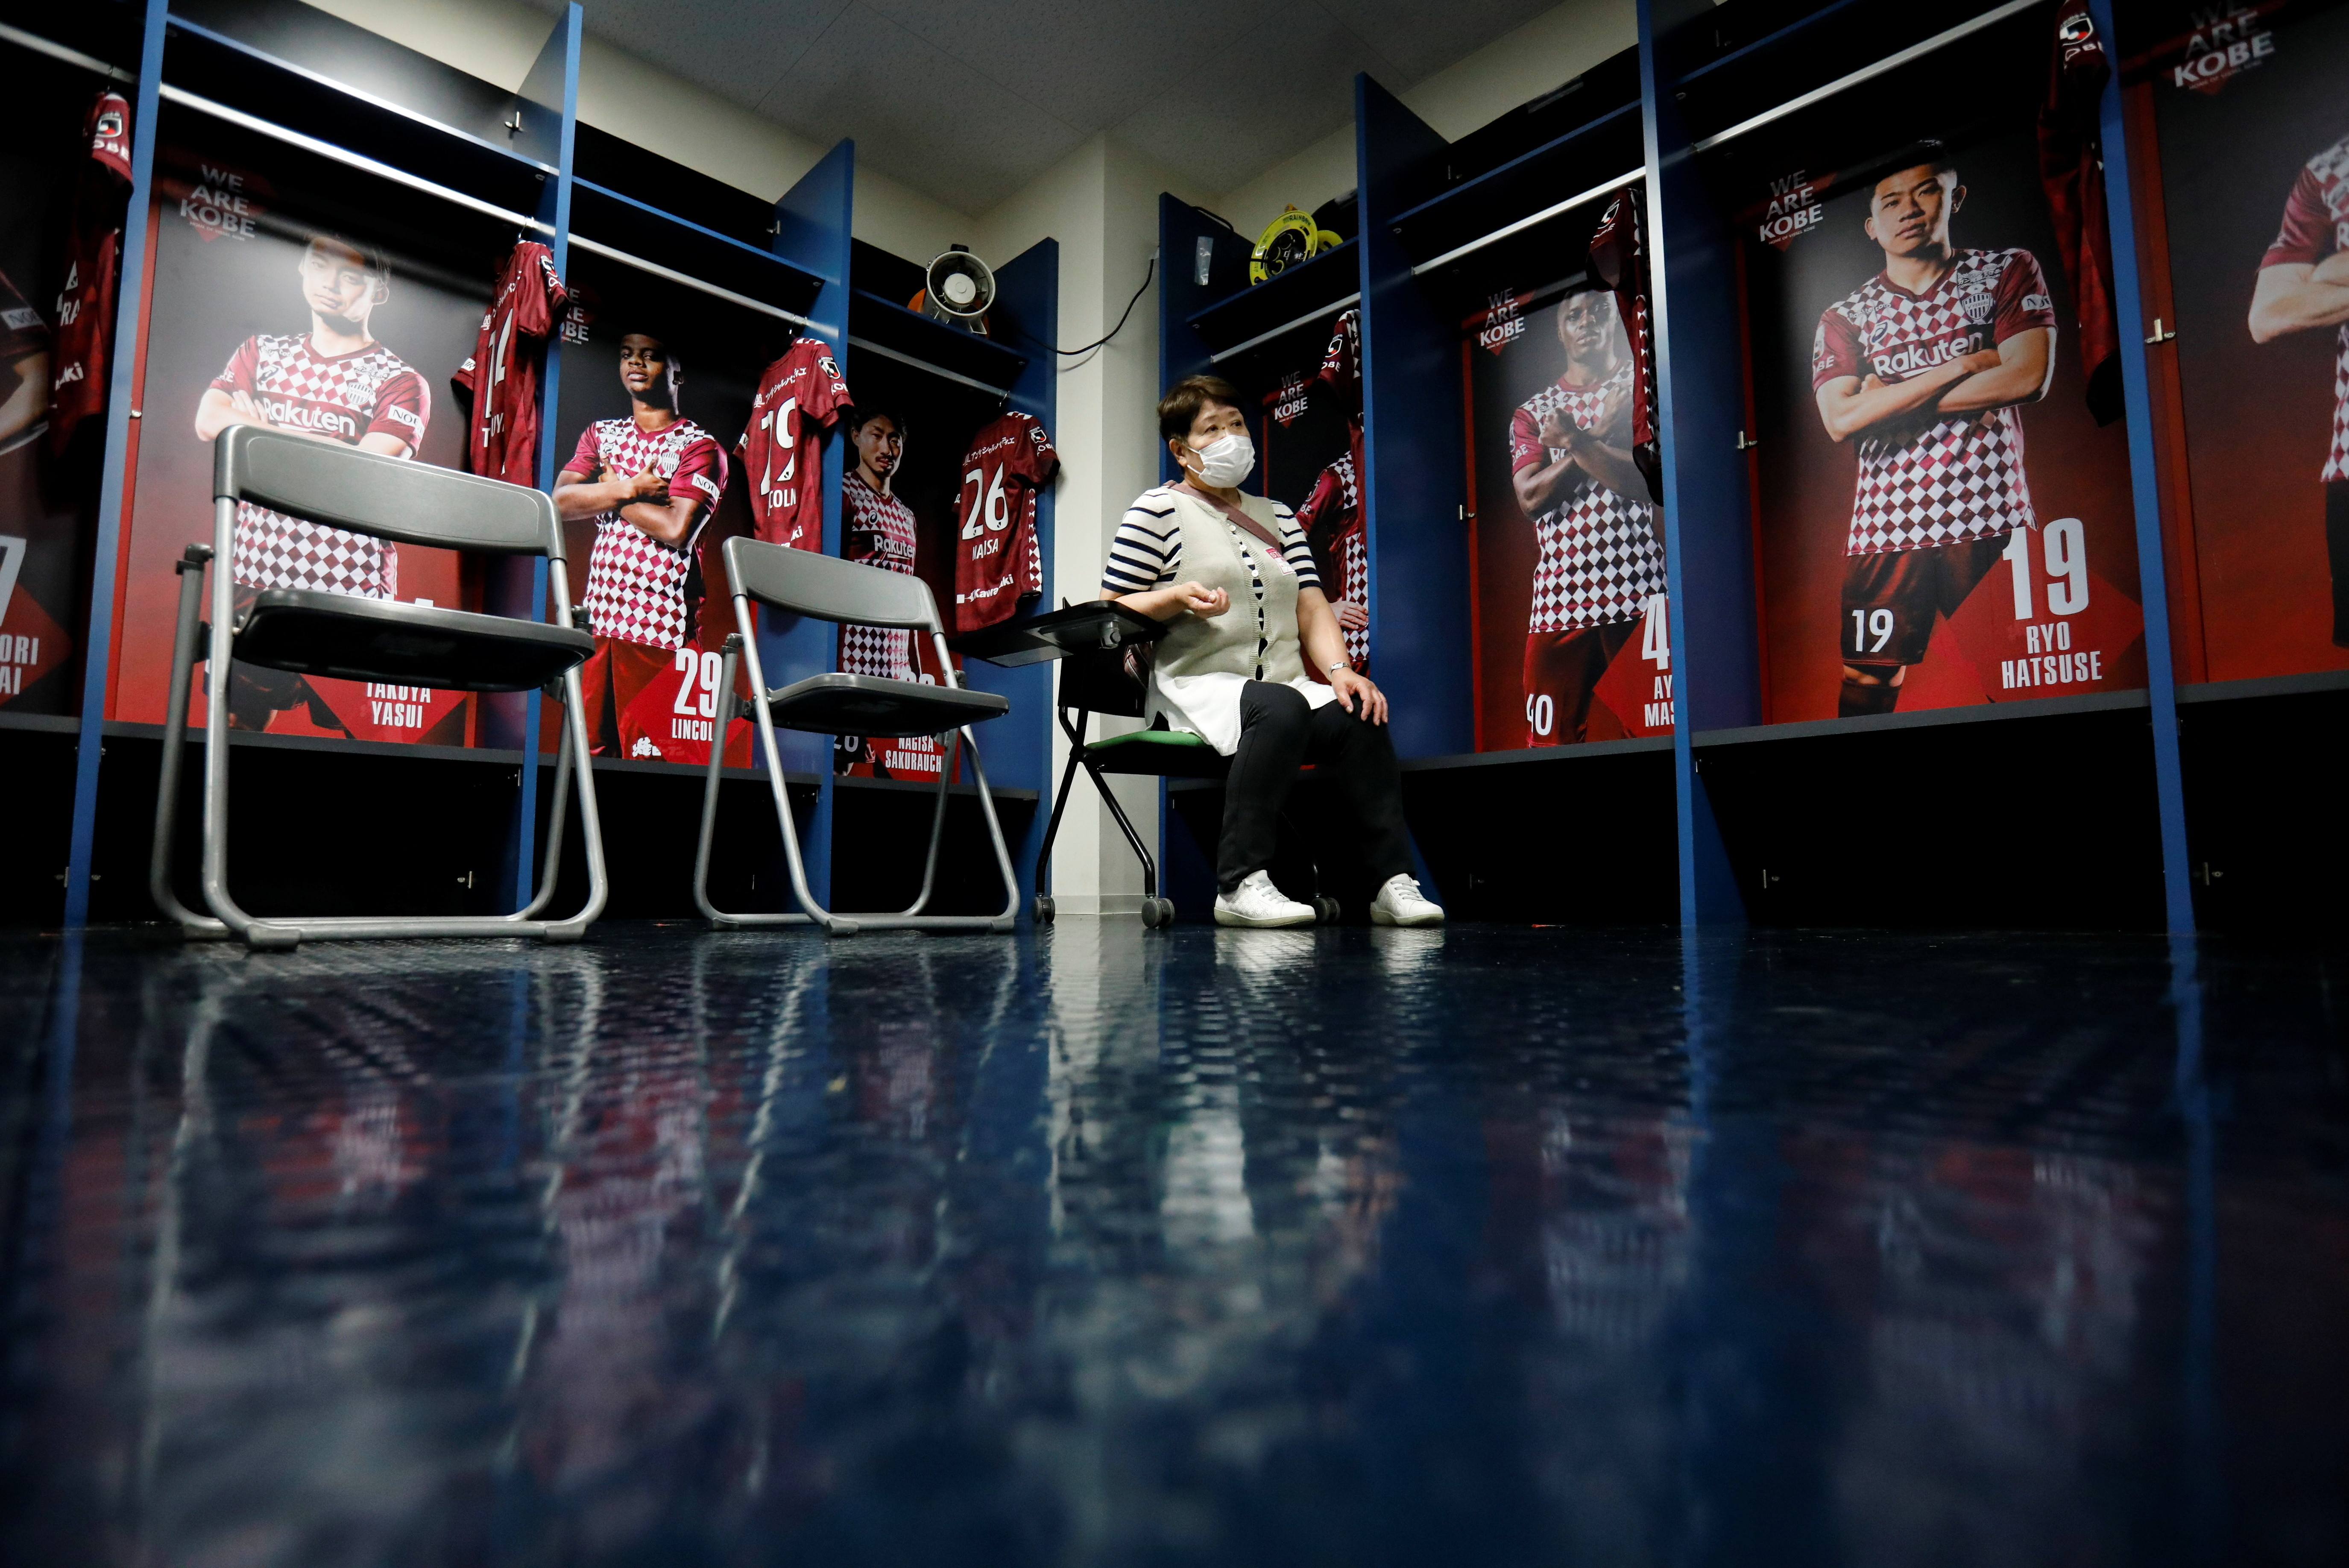 A woman waits for consultation after receiving a dose of the coronavirus disease (COVID-19) vaccine at the players' locker room of Japanese professional soccer club Vissel Kobe inside the Noevir Stadium Kobe, currently acting as a large-scale COVID-19 vaccination center, in Kobe, Japan June 12, 2021.  REUTERS/Issei Kato - RC2QYN9IYCCO